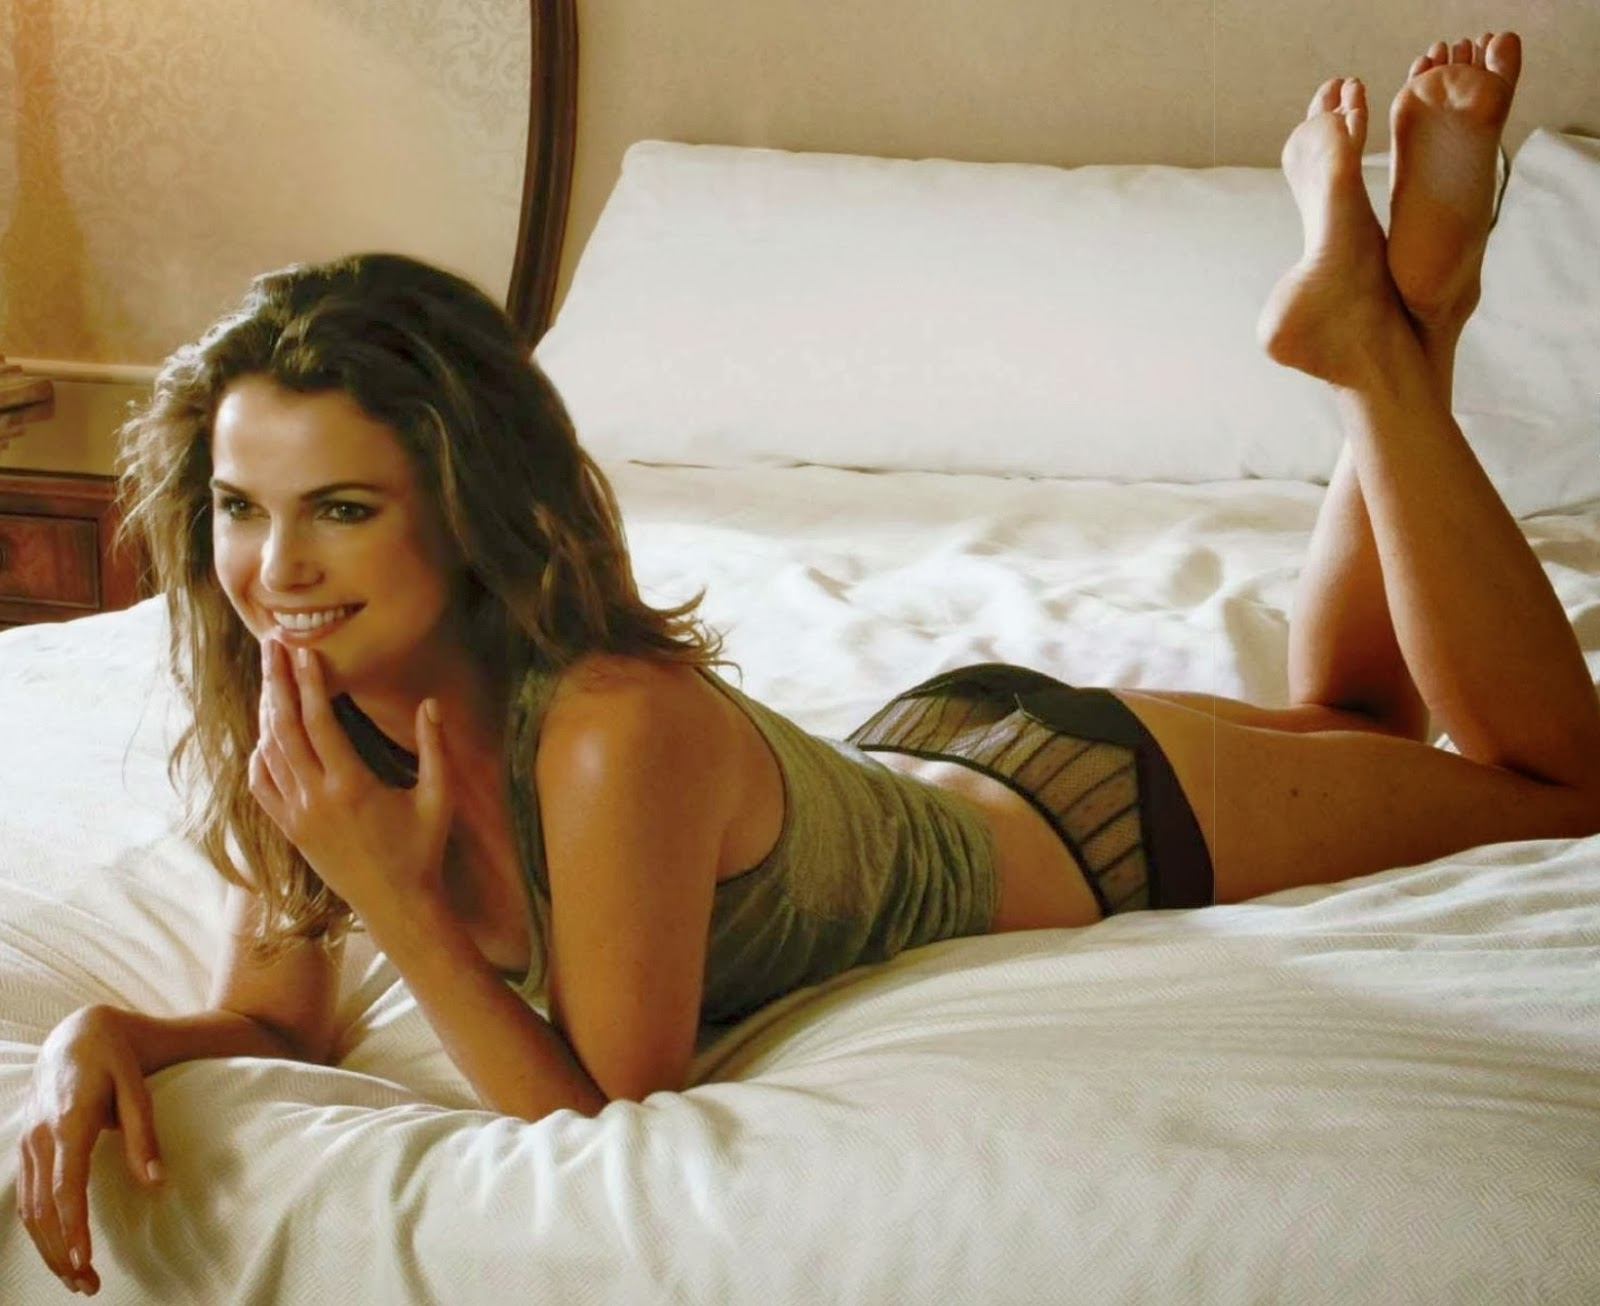 keri russell porn photo - eporner